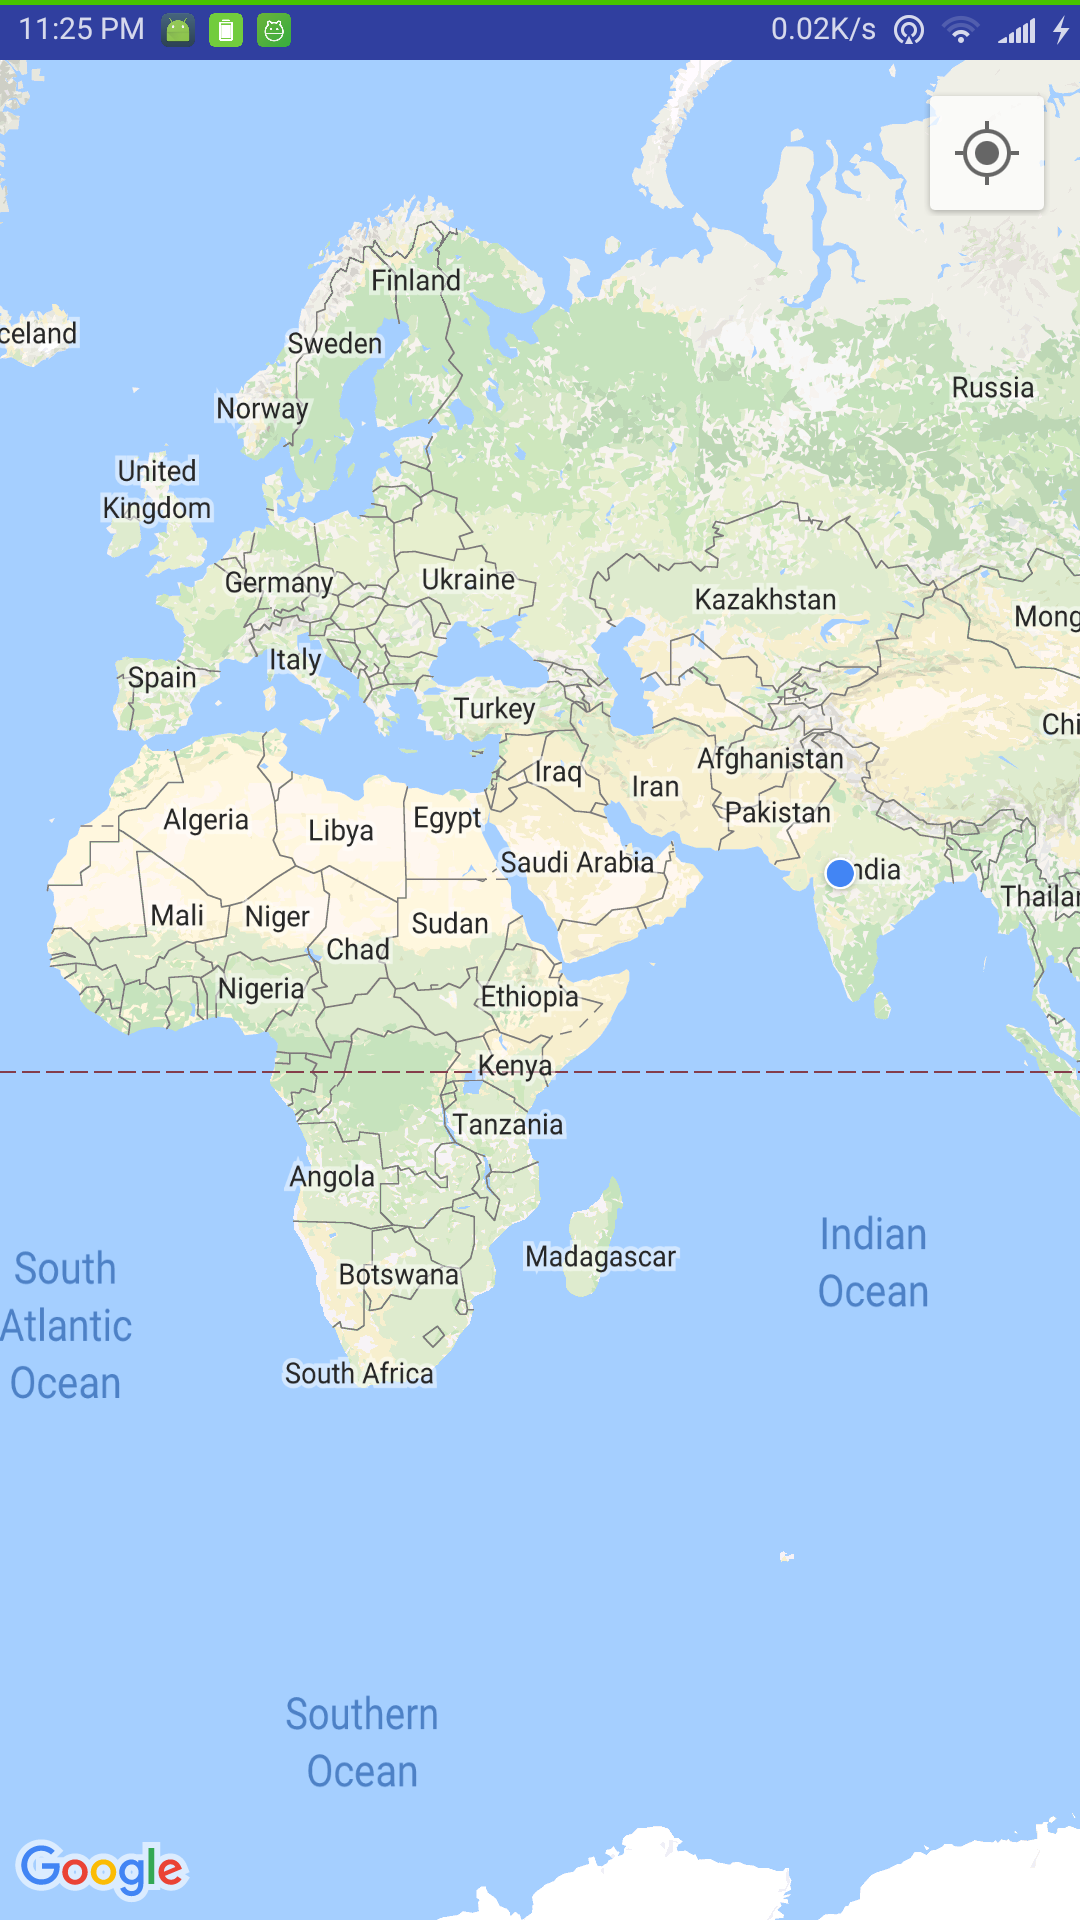 Android Google Maps Current Location, Night Mode Features - JournalDev